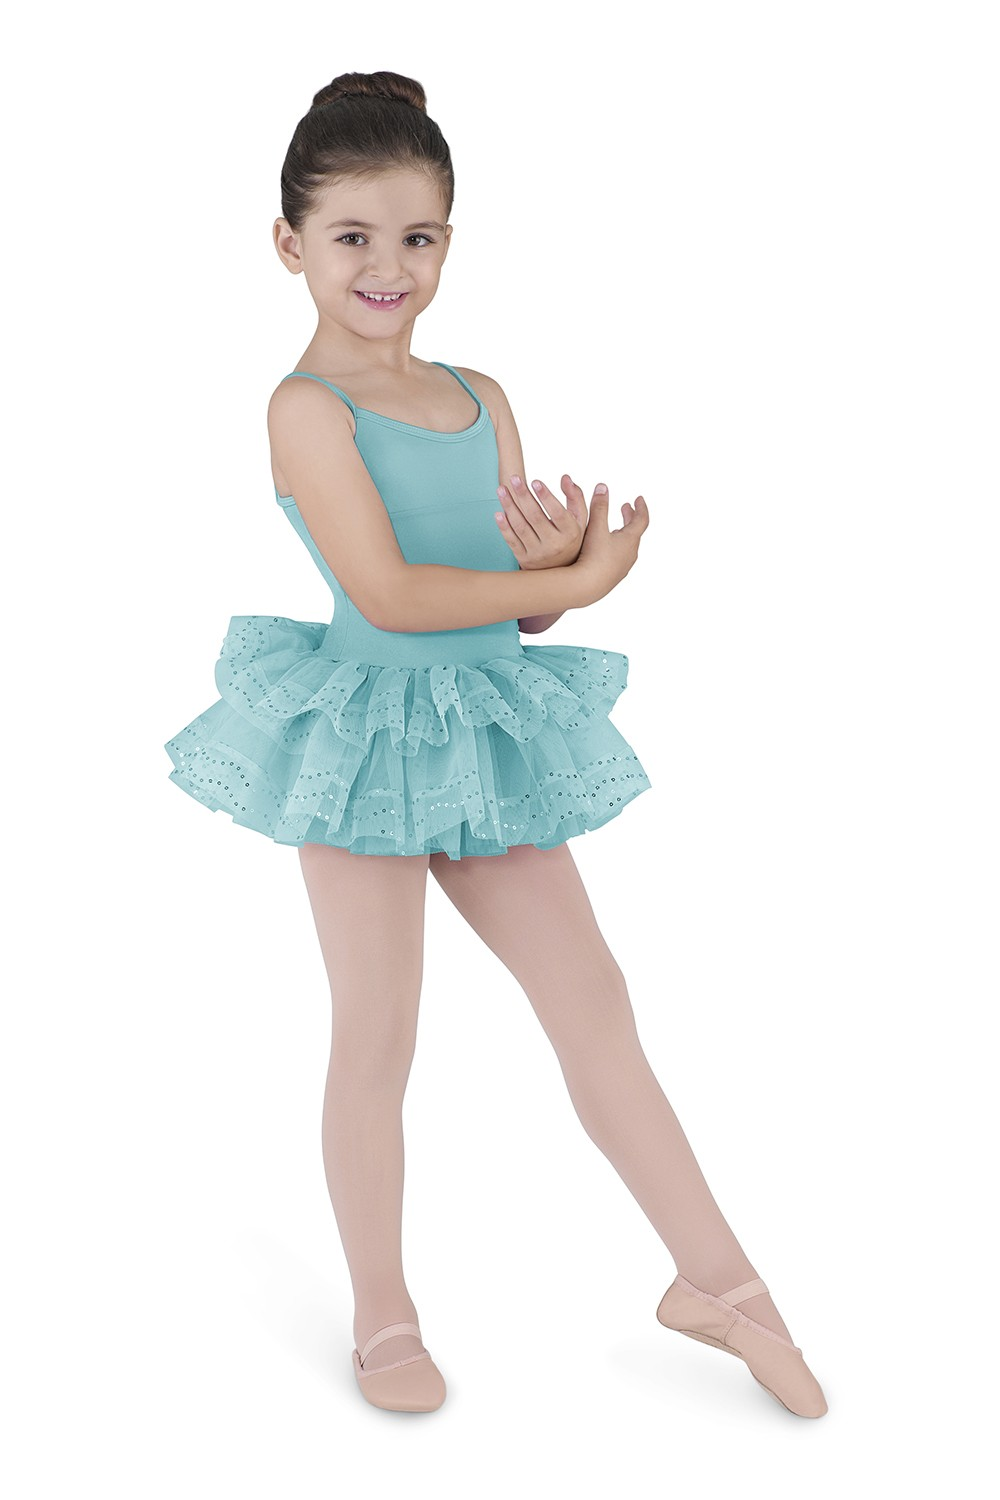 Tutu Dress Camisole Leotard Children's Dance Leotards